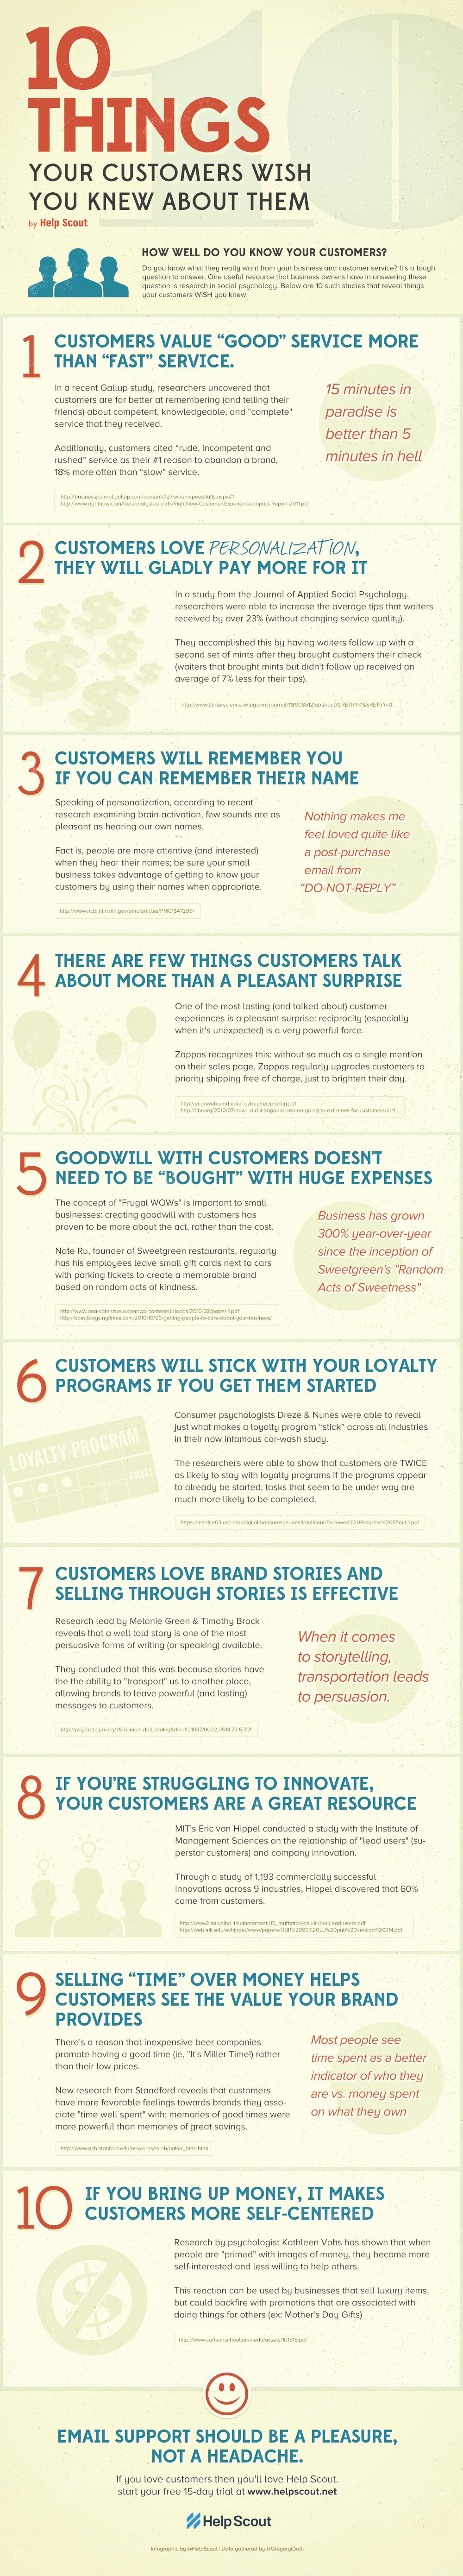 10 things customers wish you knew